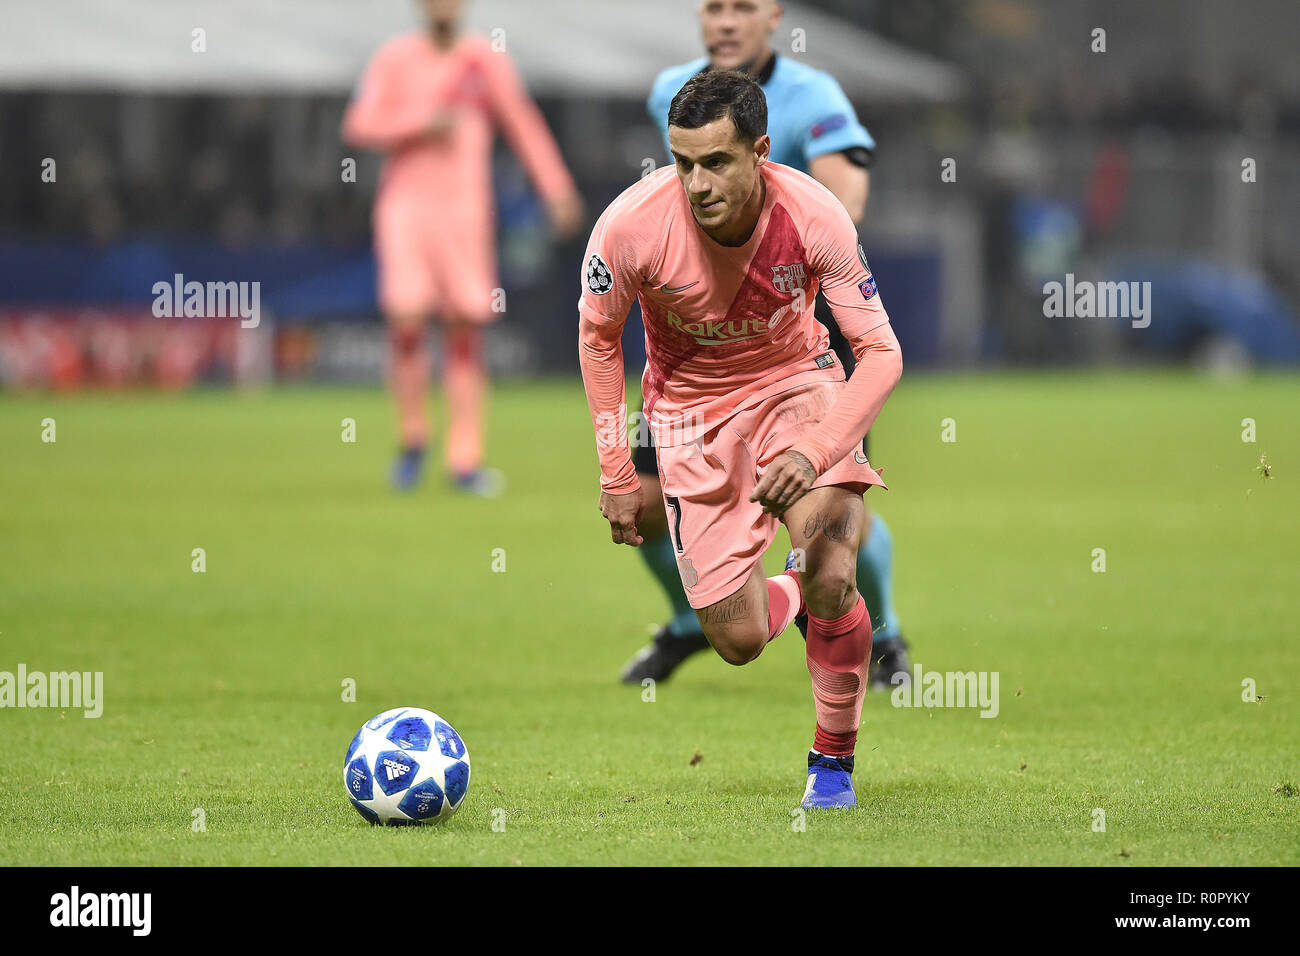 Milan, Italy. 6th Nov 2018. Philippe Coutinho of Barcelona during the UEFA Champions League Group Stage match between Inter Milan and Barcelona at Stadio San Siro, Milan, Italy on 6 November 2018. Photo by Giuseppe Maffia. Credit: UK Sports Pics Ltd/Alamy Live News Stock Photo